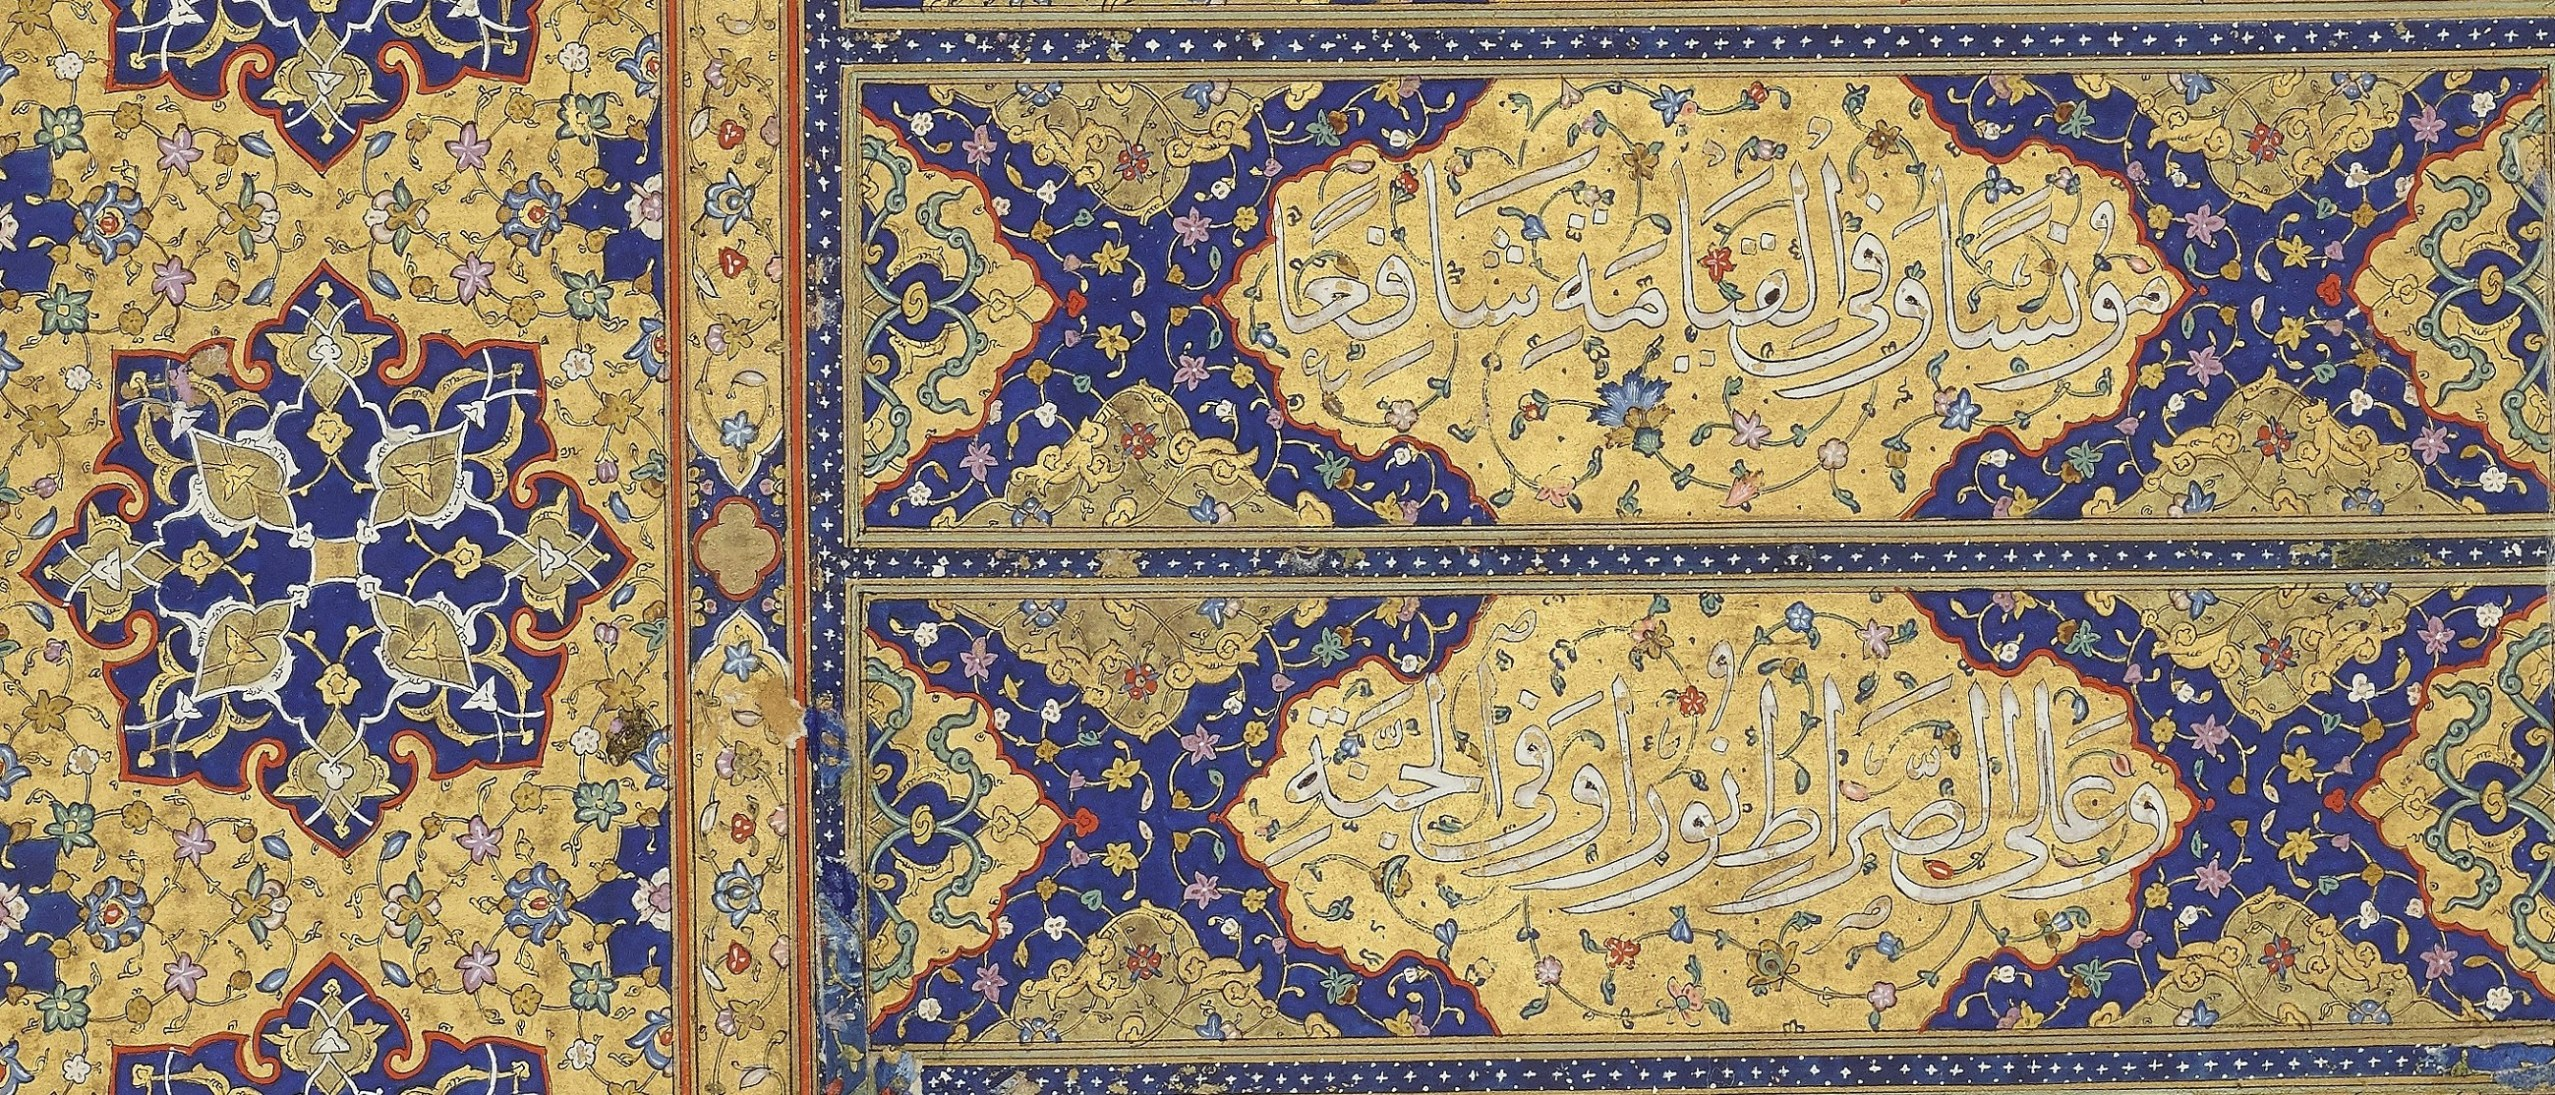 Detail image, Qur'an; Manuscript; Calligrapher: Ahmad Sayri; Safavid period, 1598 (1006 A.H.); Ink, color and gold on paper; Iran; Purchase — Charles Lang Freer Endowment; Freer Gallery of Art F1932.65